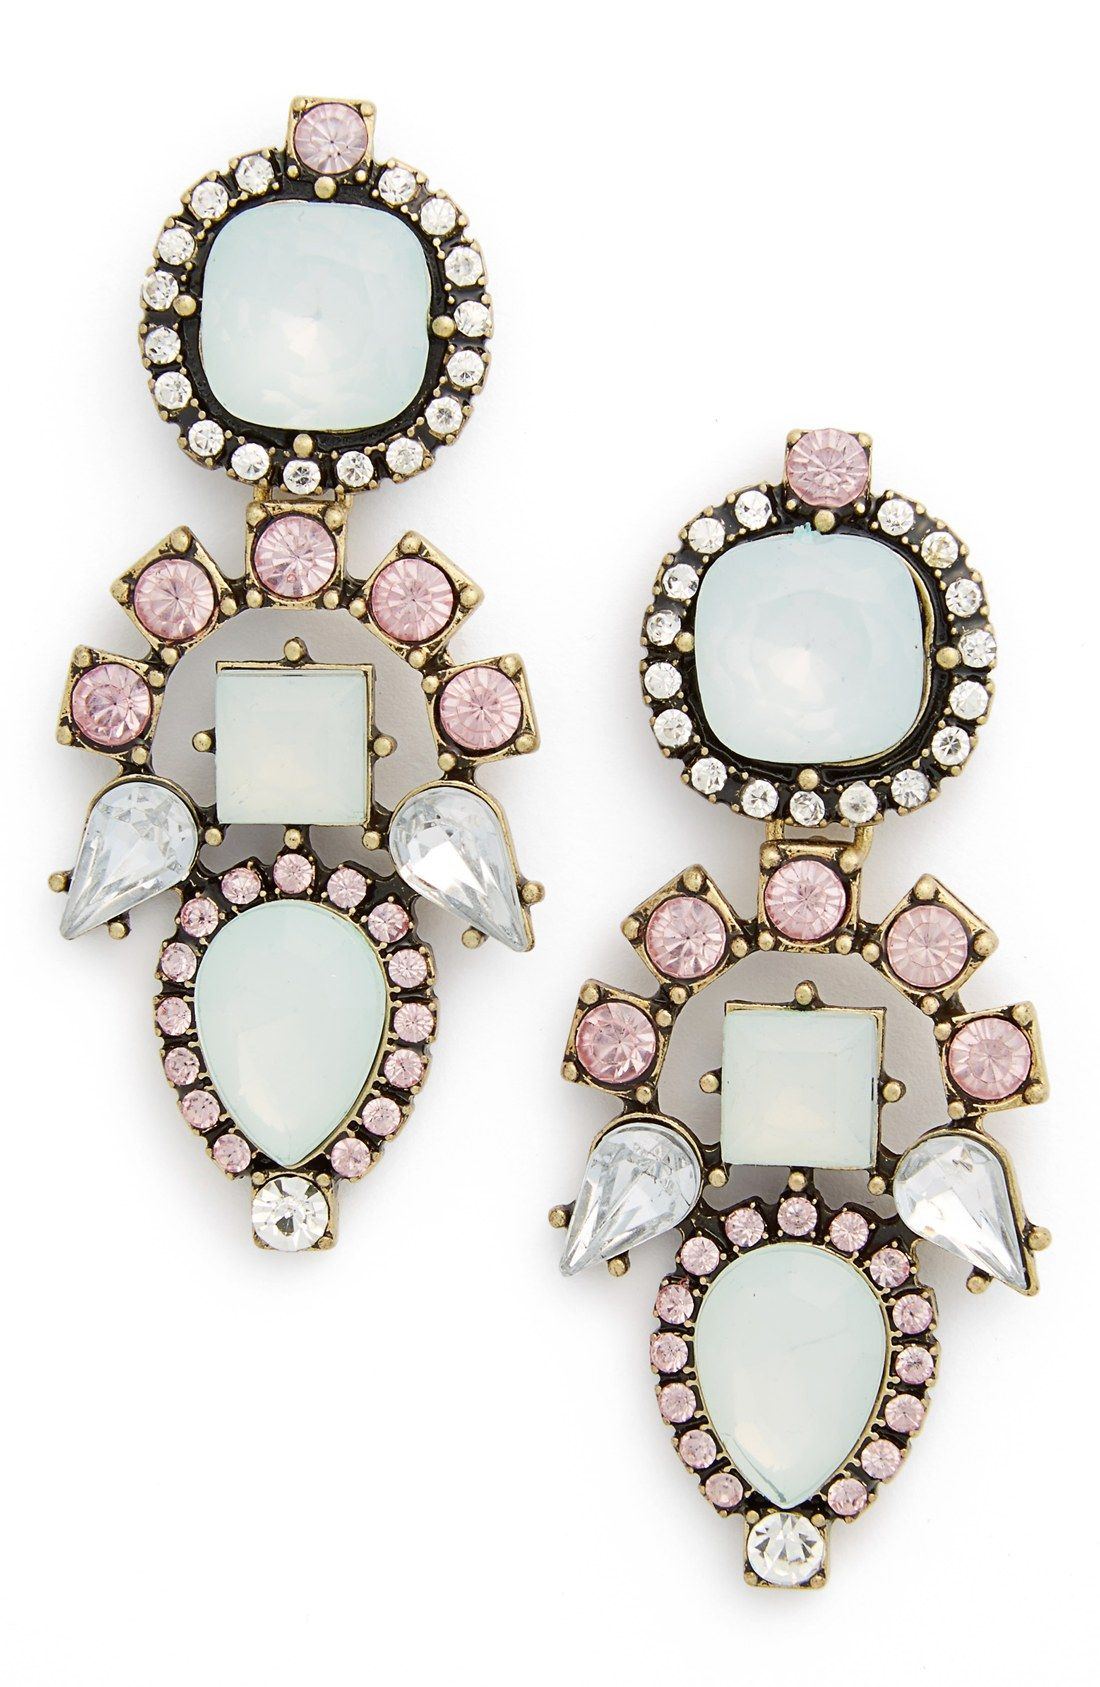 Clusters of faceted pink multi stones sparkle on statement-making earrings perfect for finishing off a glam look.